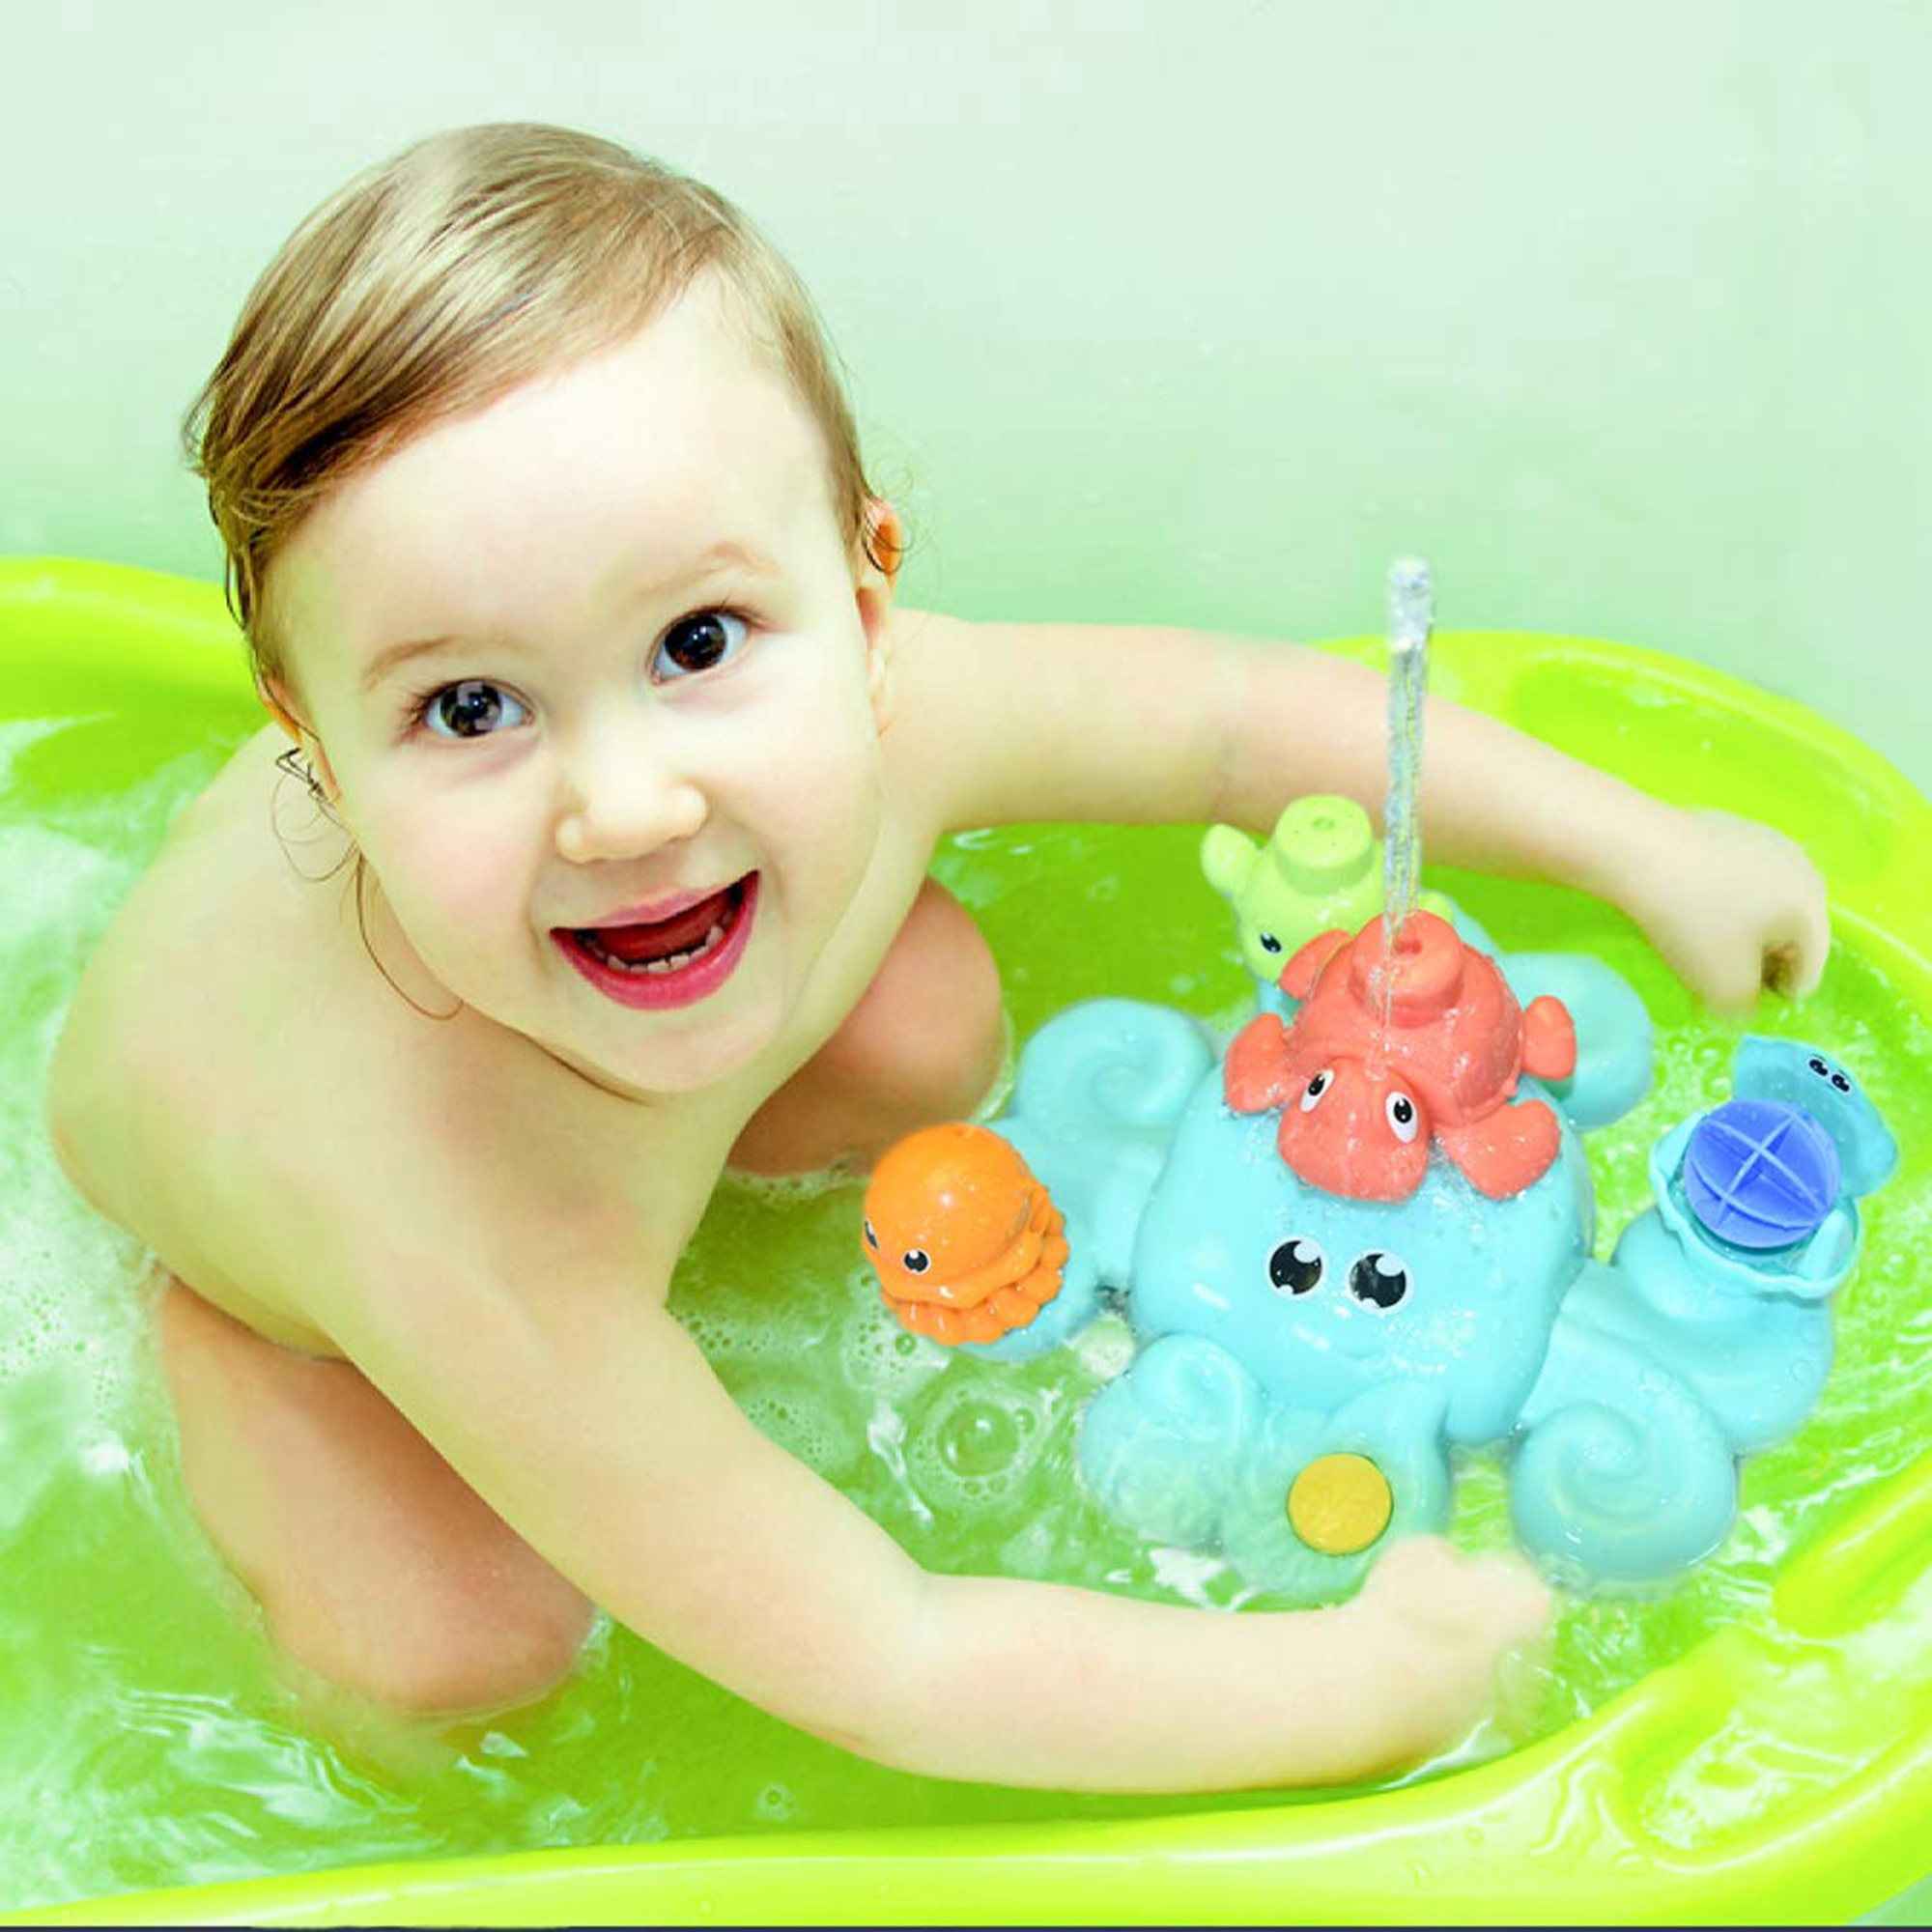 Bath Toys For Toddlers 5 Pcs Bath Tub Toys Set Spray Water Toys For Kids Best Gifts For Boys Girls F 363 Walmart Com Walmart Com